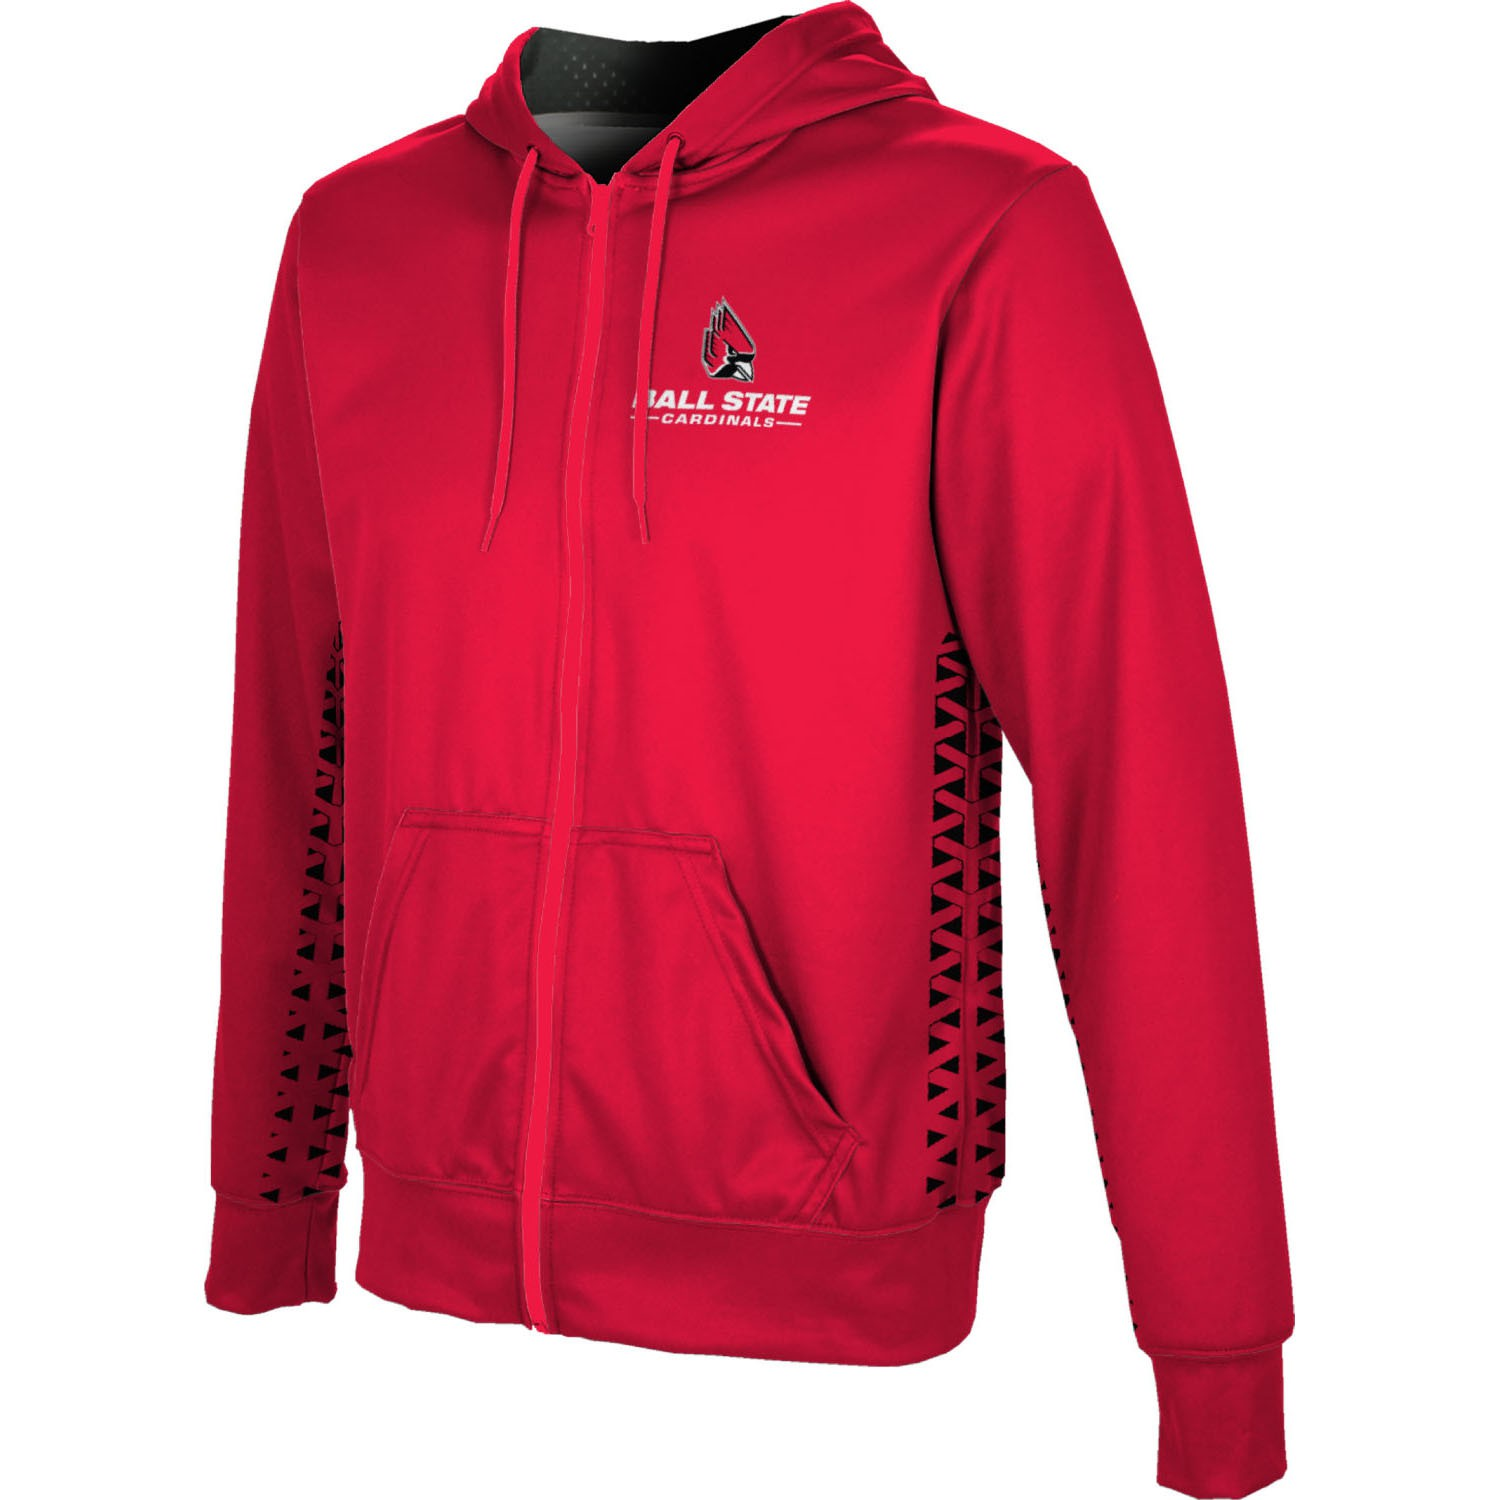 ProSphere Men's Ball State University Geometric Fullzip Hoodie